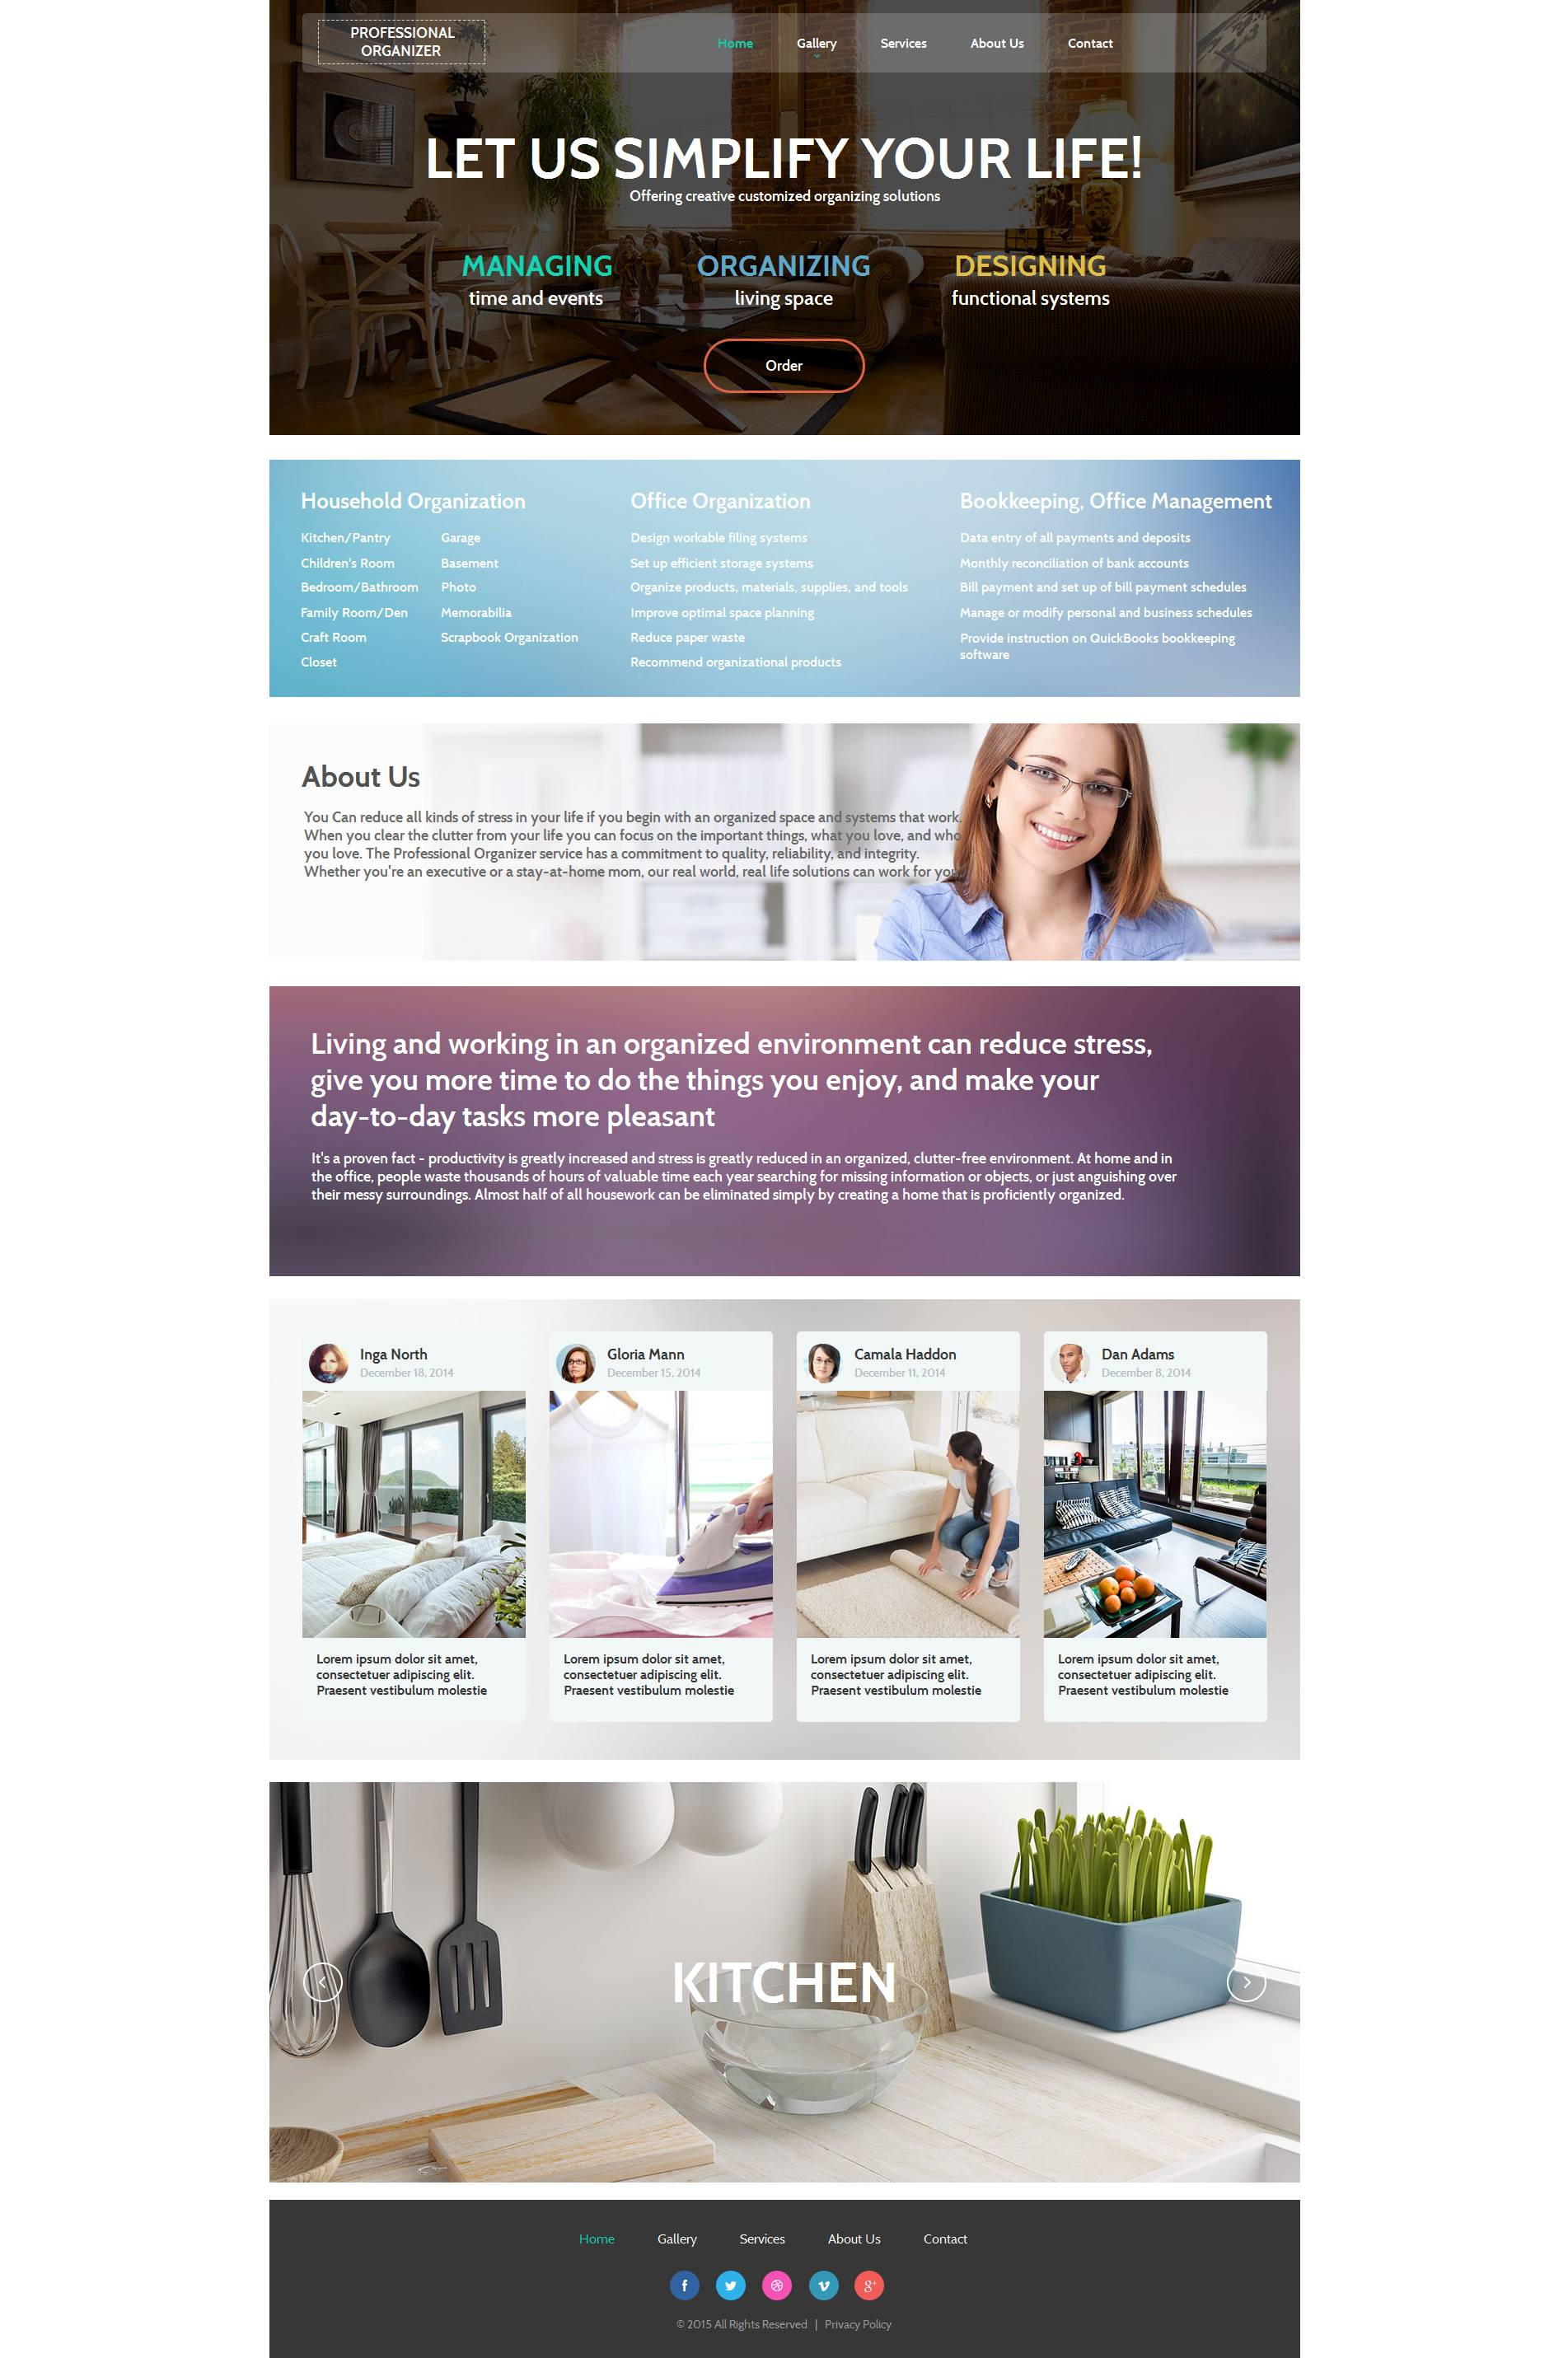 The Professional Organizer Moto CMS HTML Design 53627, one of the best Moto CMS HTML templates of its kind (business), also known as professional organizer Moto CMS HTML template, household Moto CMS HTML template, office Moto CMS HTML template, bookkeeping Moto CMS HTML template, management and related with professional organizer, household, office, bookkeeping, management, etc.